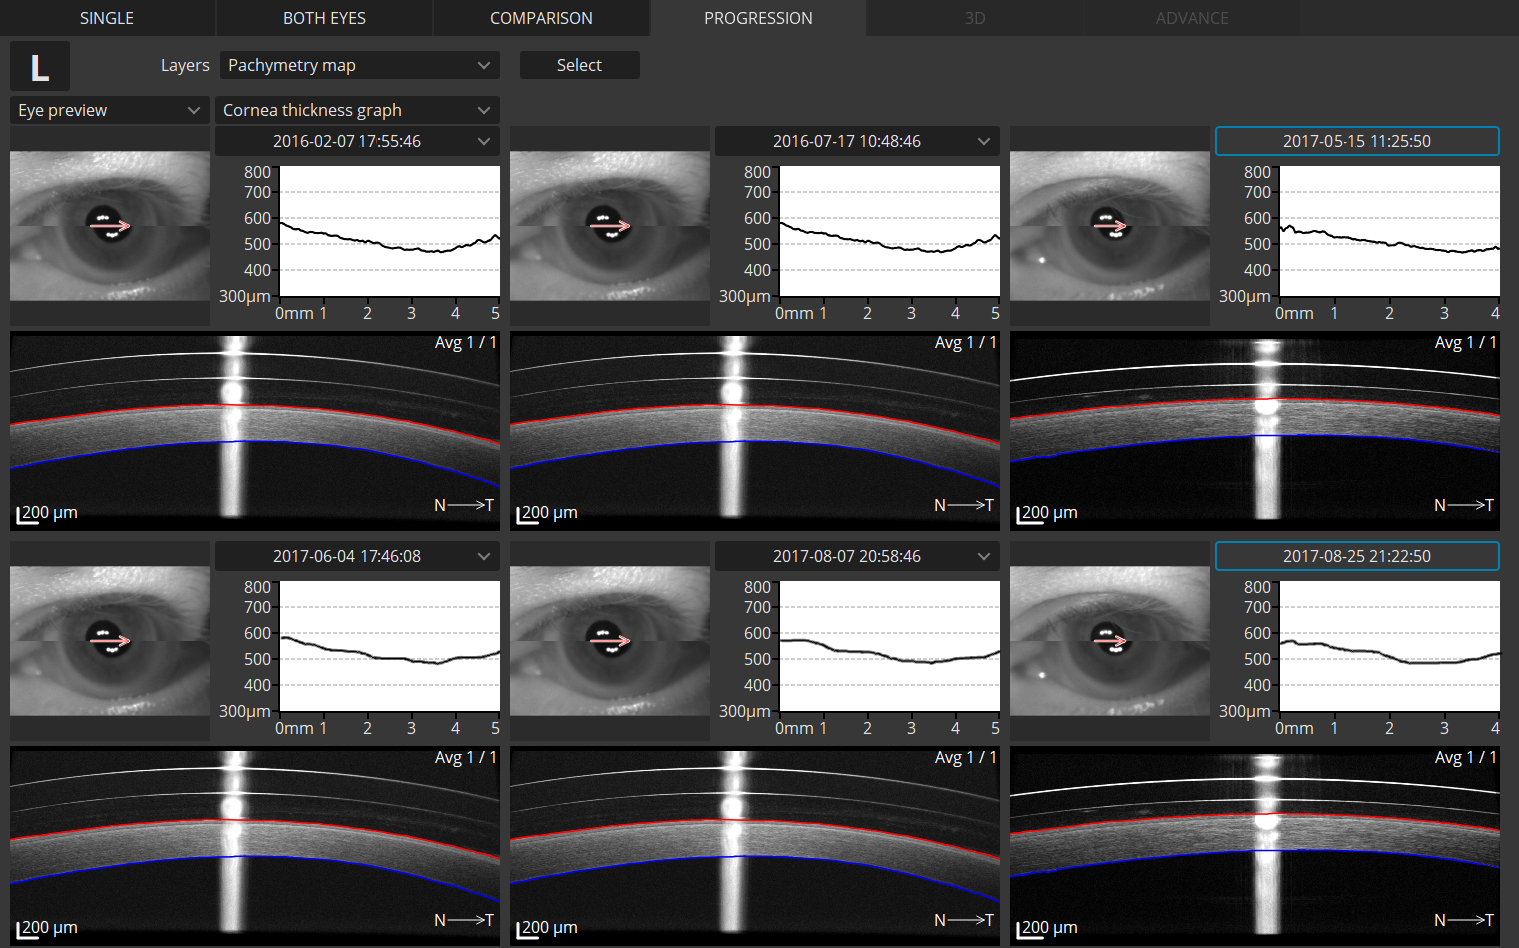 Anterior Cornea Progression